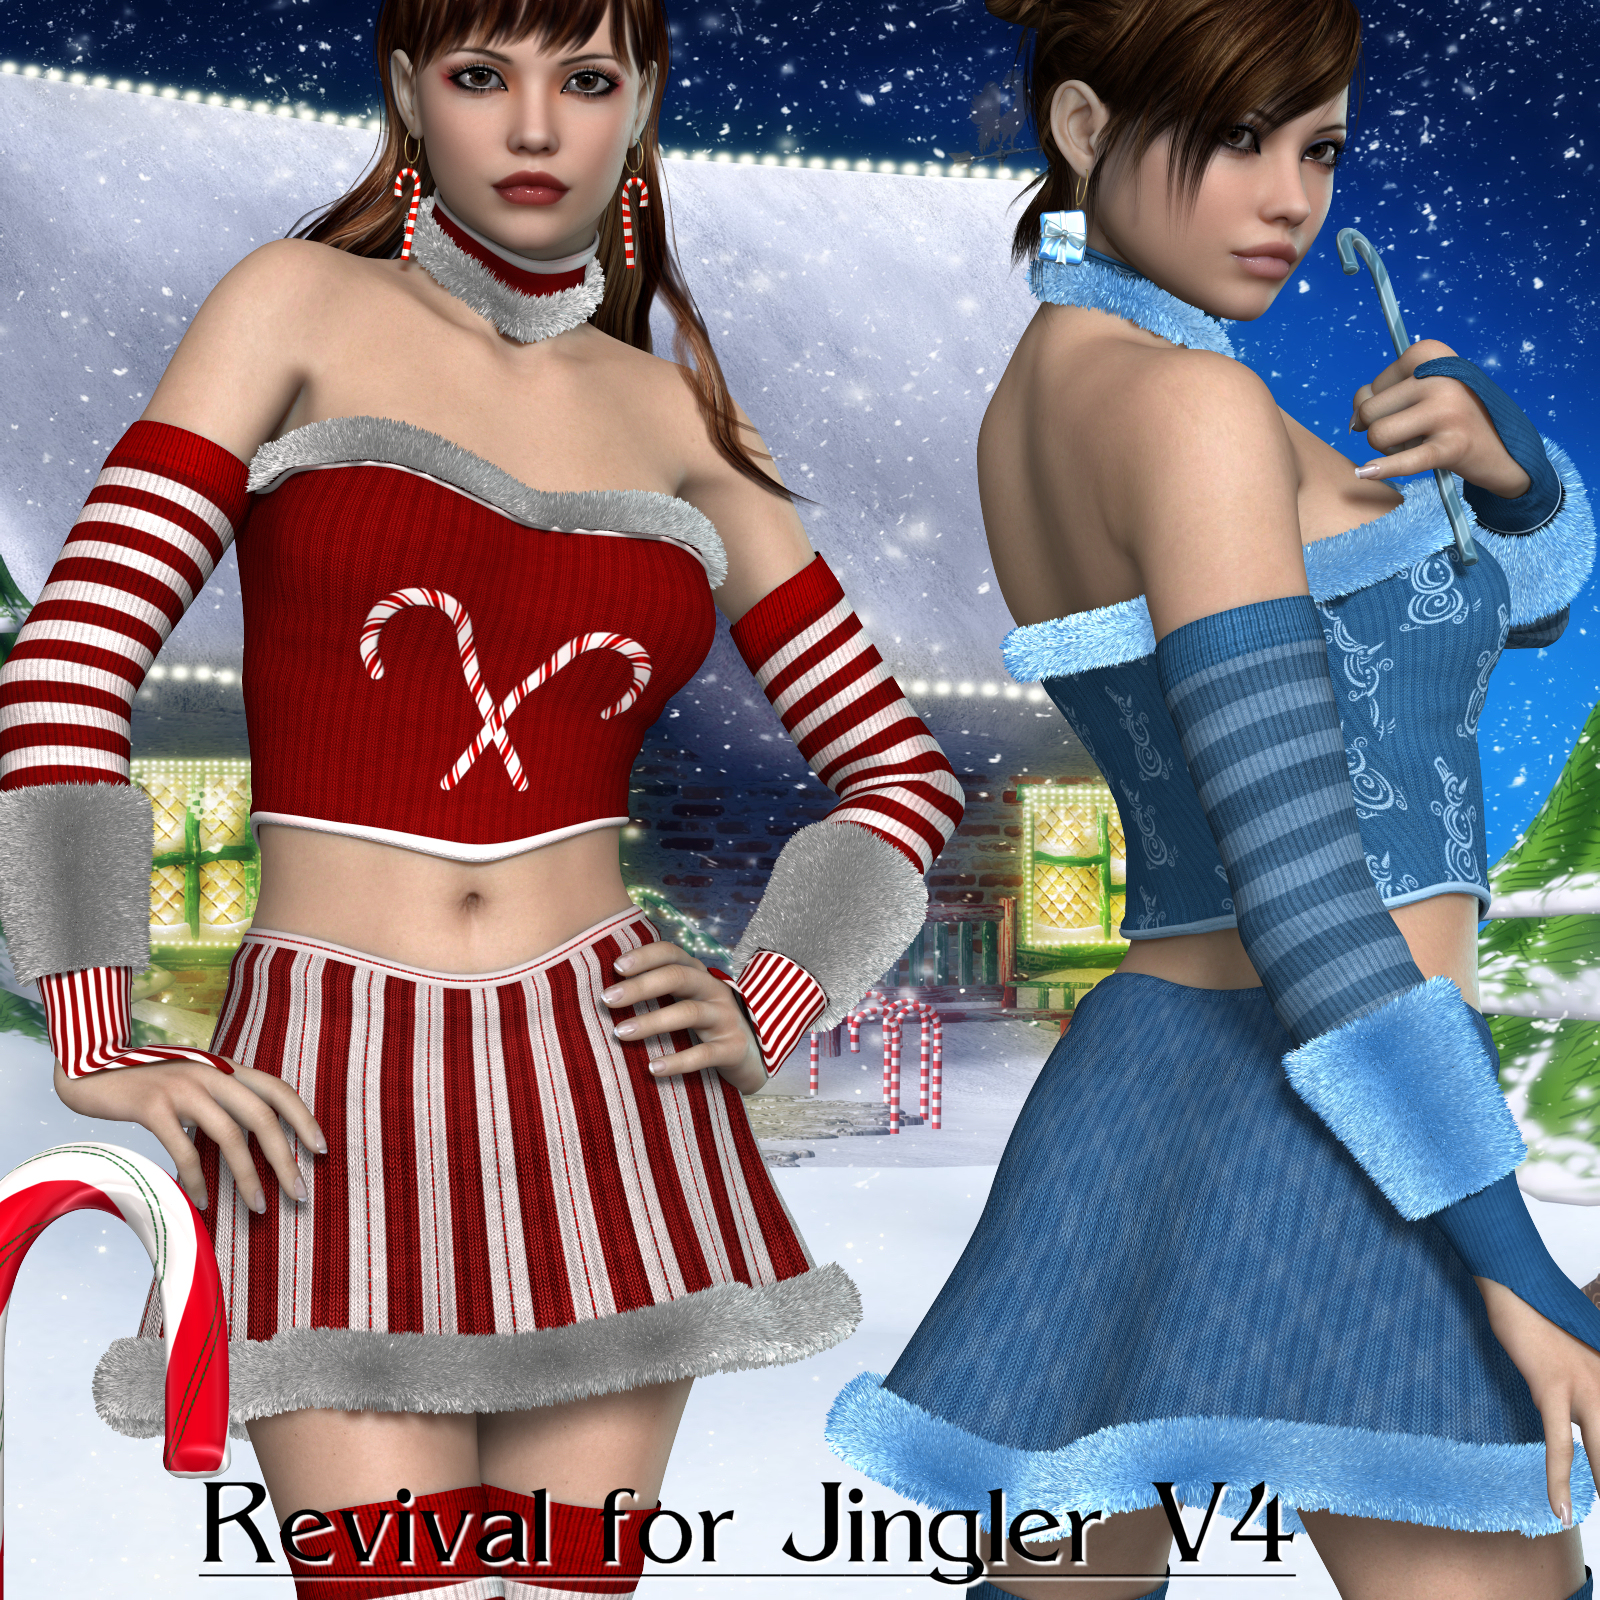 Revival for Jingler V4_Poser